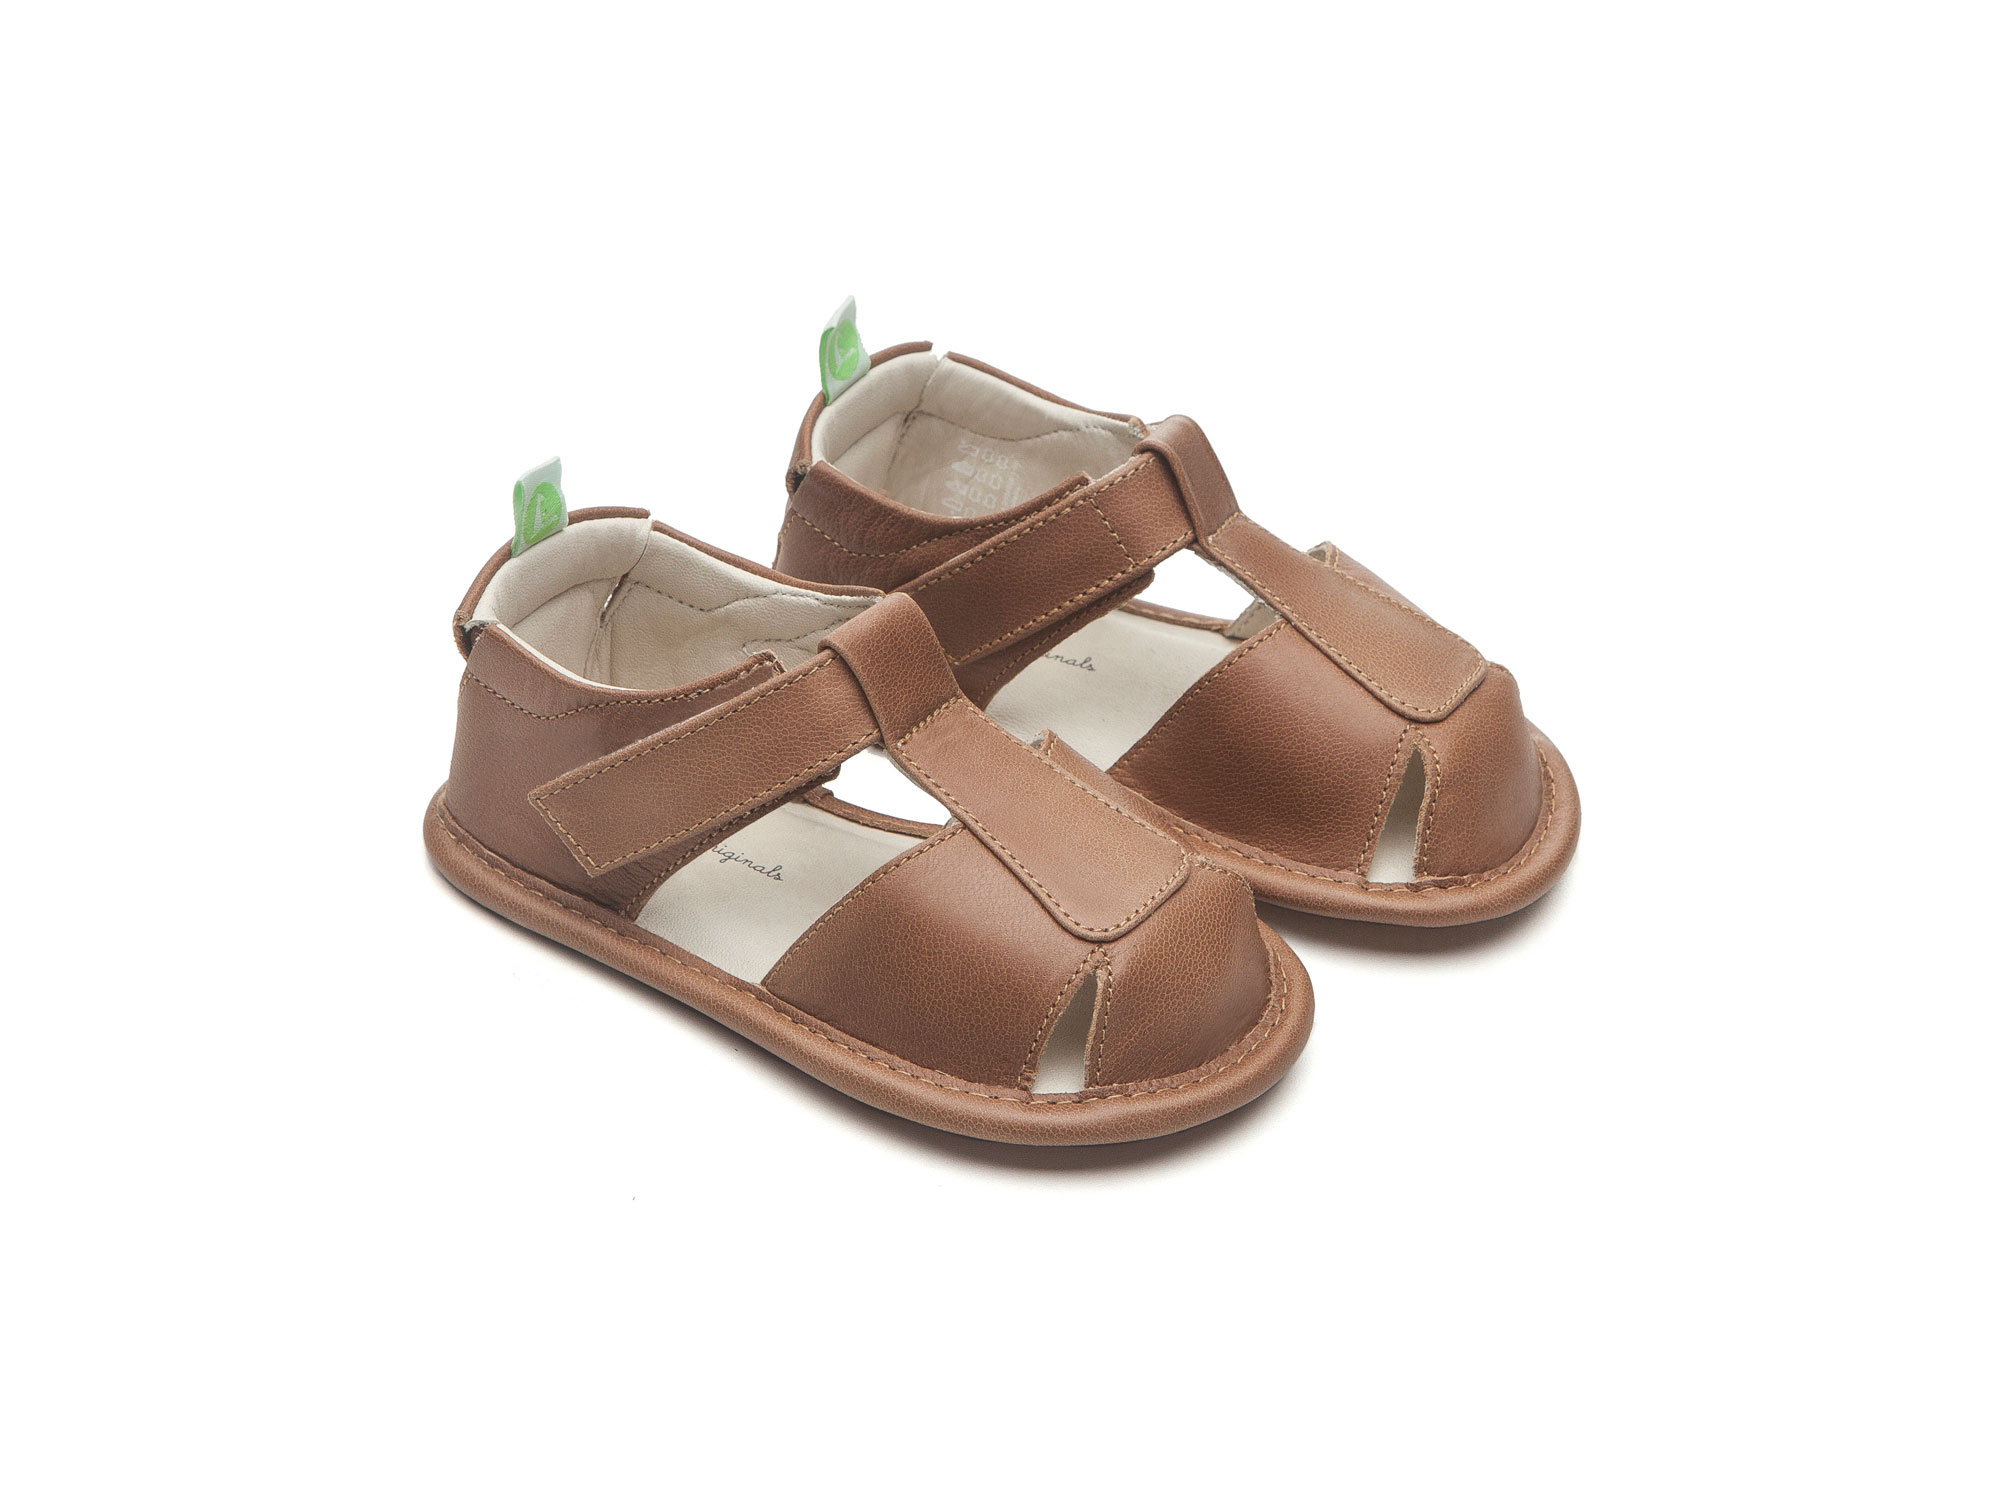 Sandal Parky Whisky  Baby for ages 0 to 2 years - 0